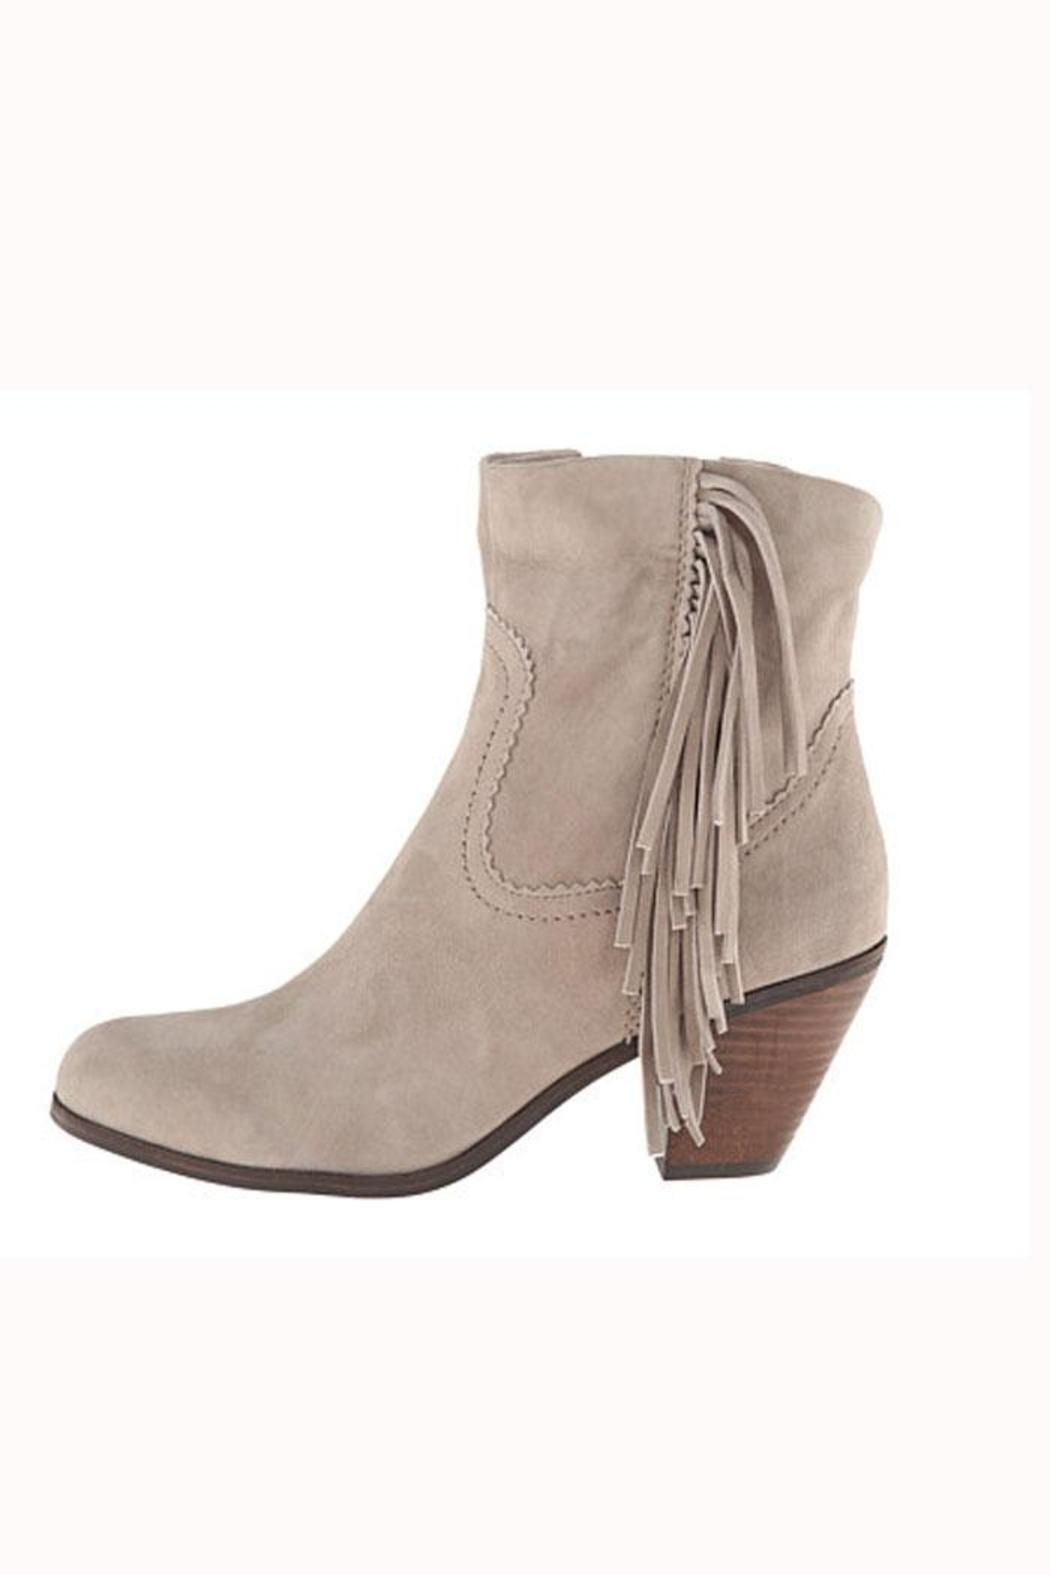 3cdd27aabeeaa This soft suede grey bootie features a zip closure on the inseam and fringe  detail on